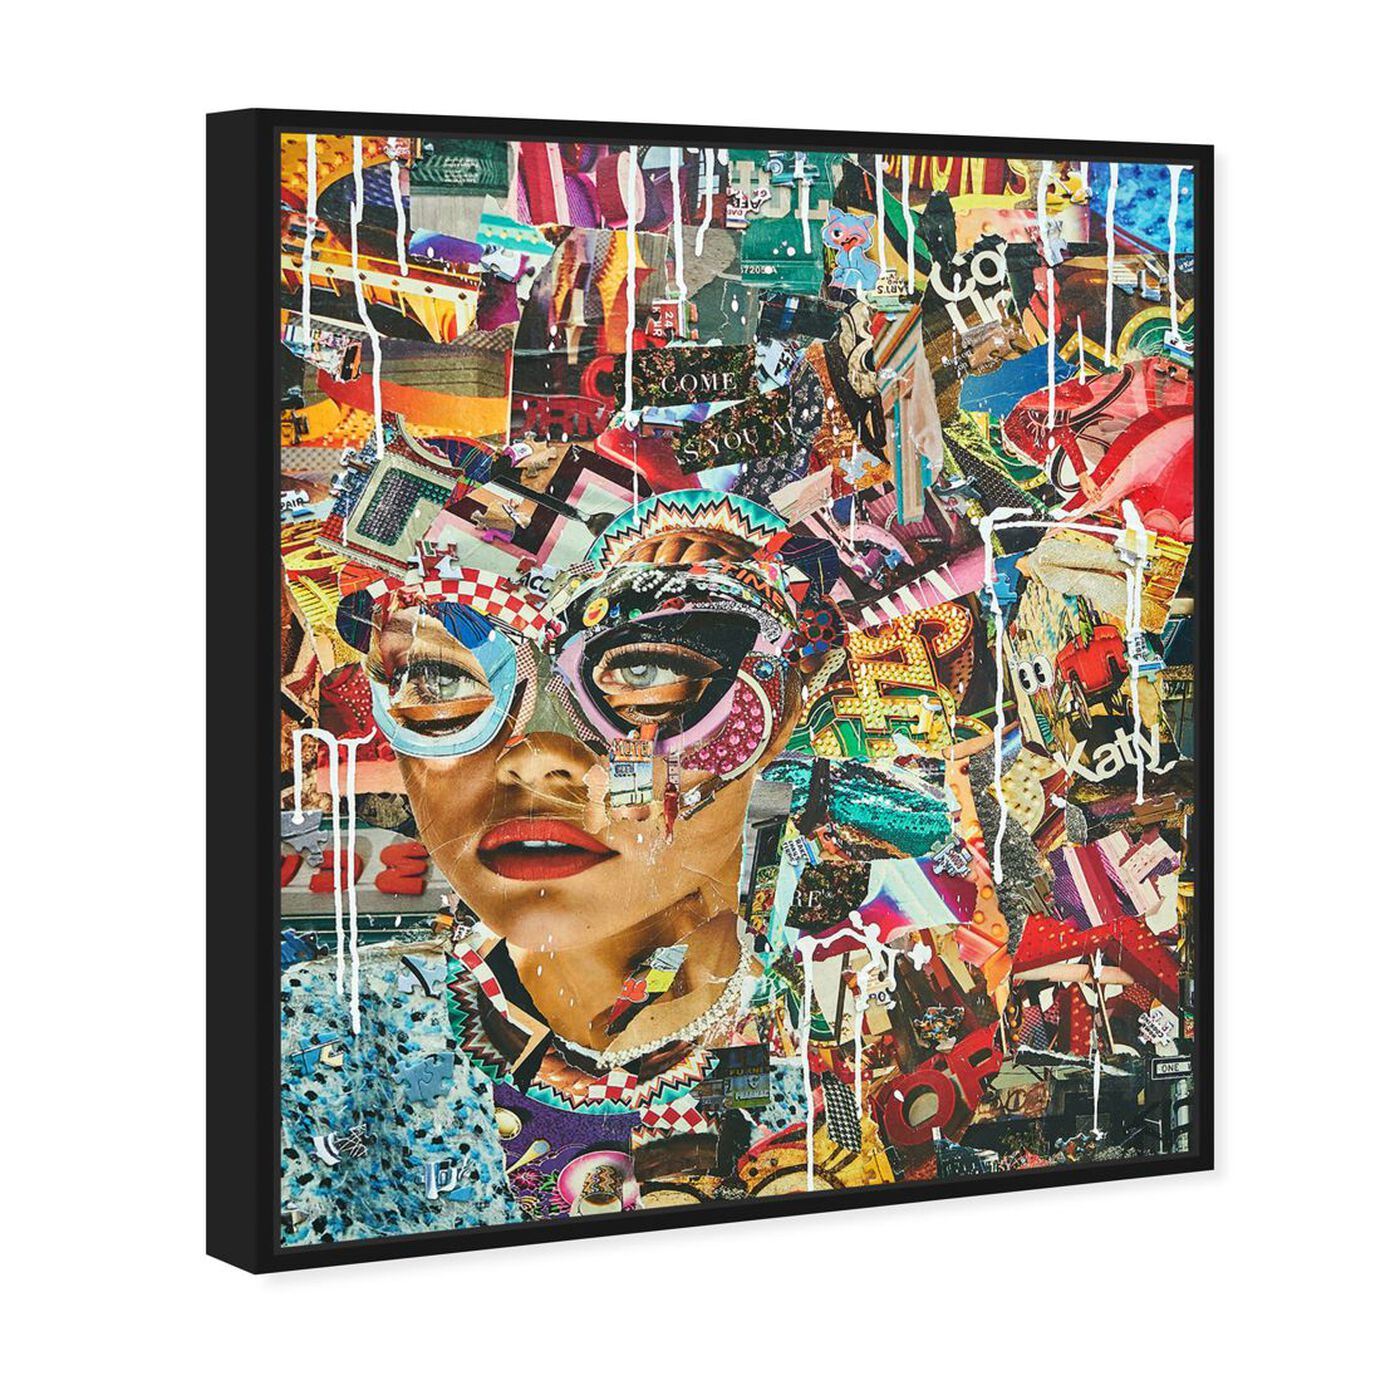 Angled view of Katy Hirchfeld - Come As You Are featuring fashion and glam and accessories art.